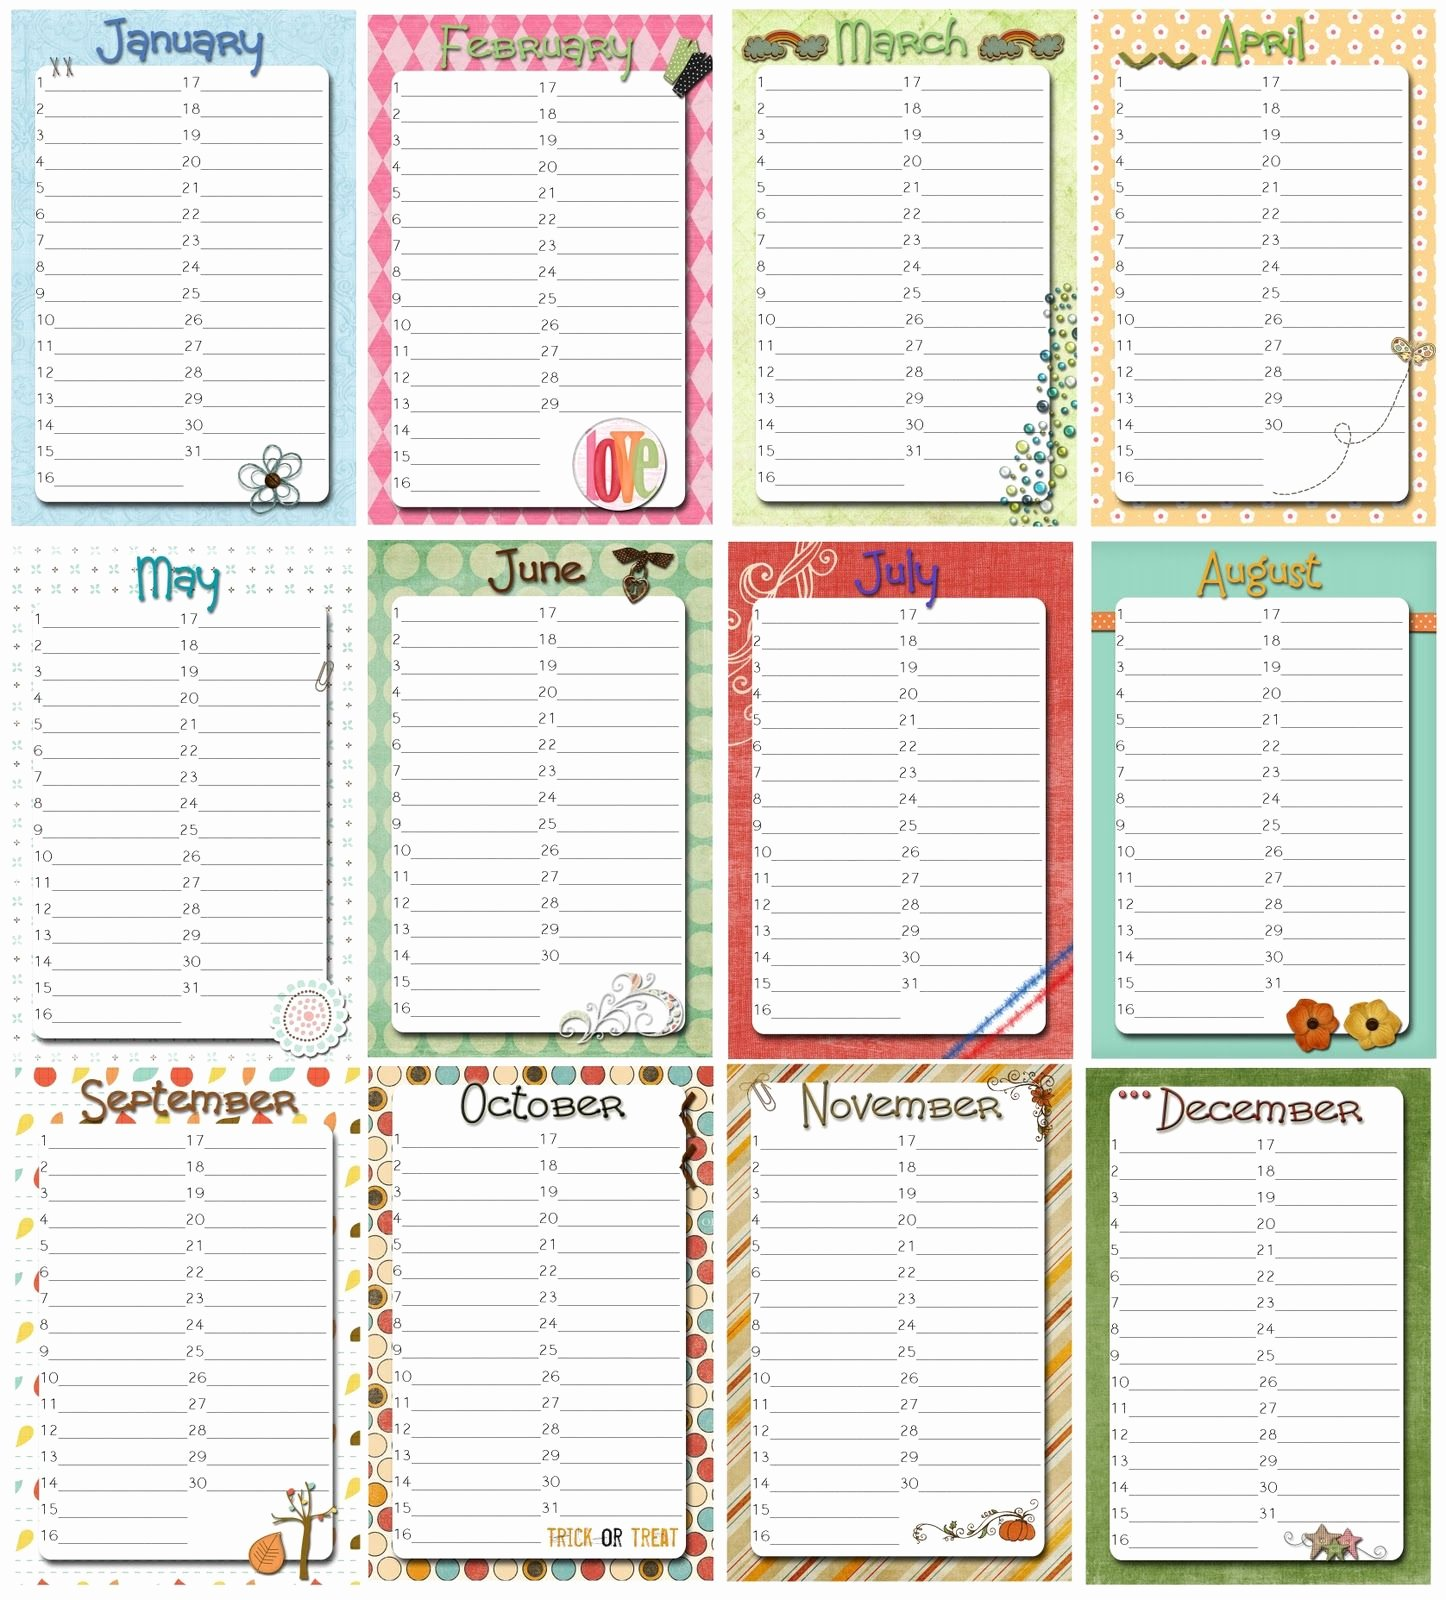 Employee Birthday List Template Inspirational Family Birthday Calendar Printable Free